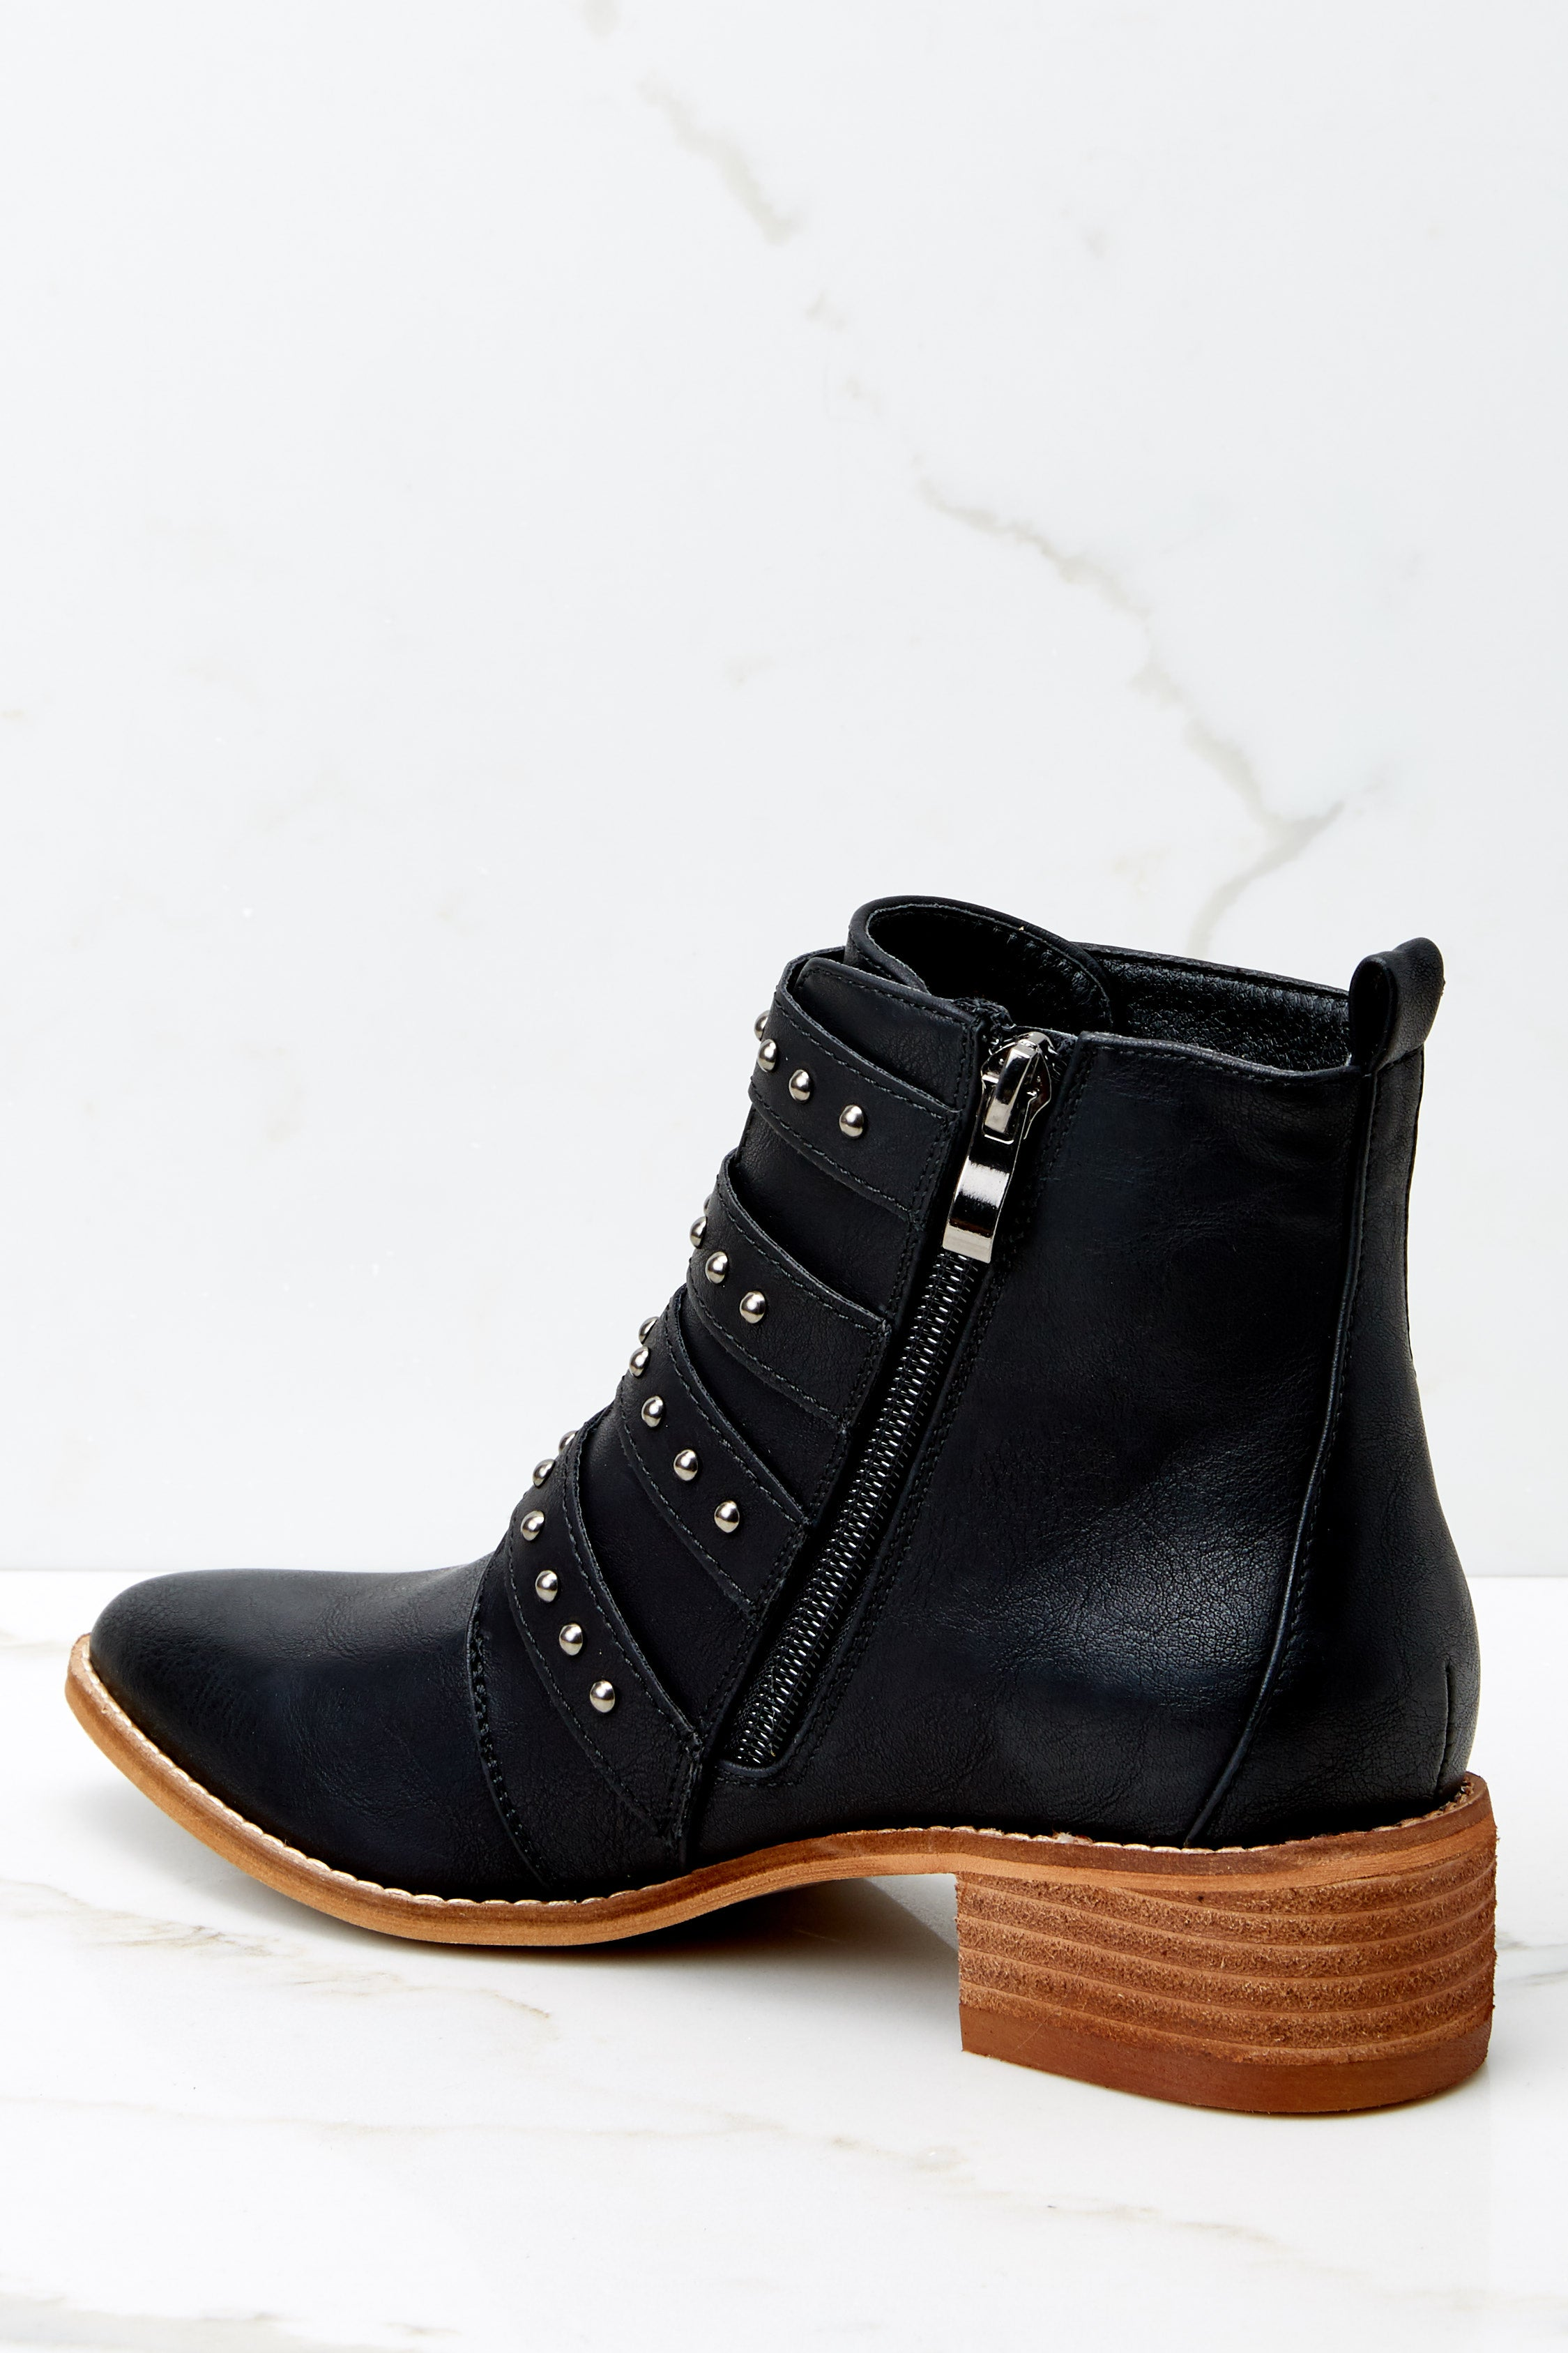 4 City Girl Black Ankle Boots (BACKORDER OCTOBER) @ reddress.com